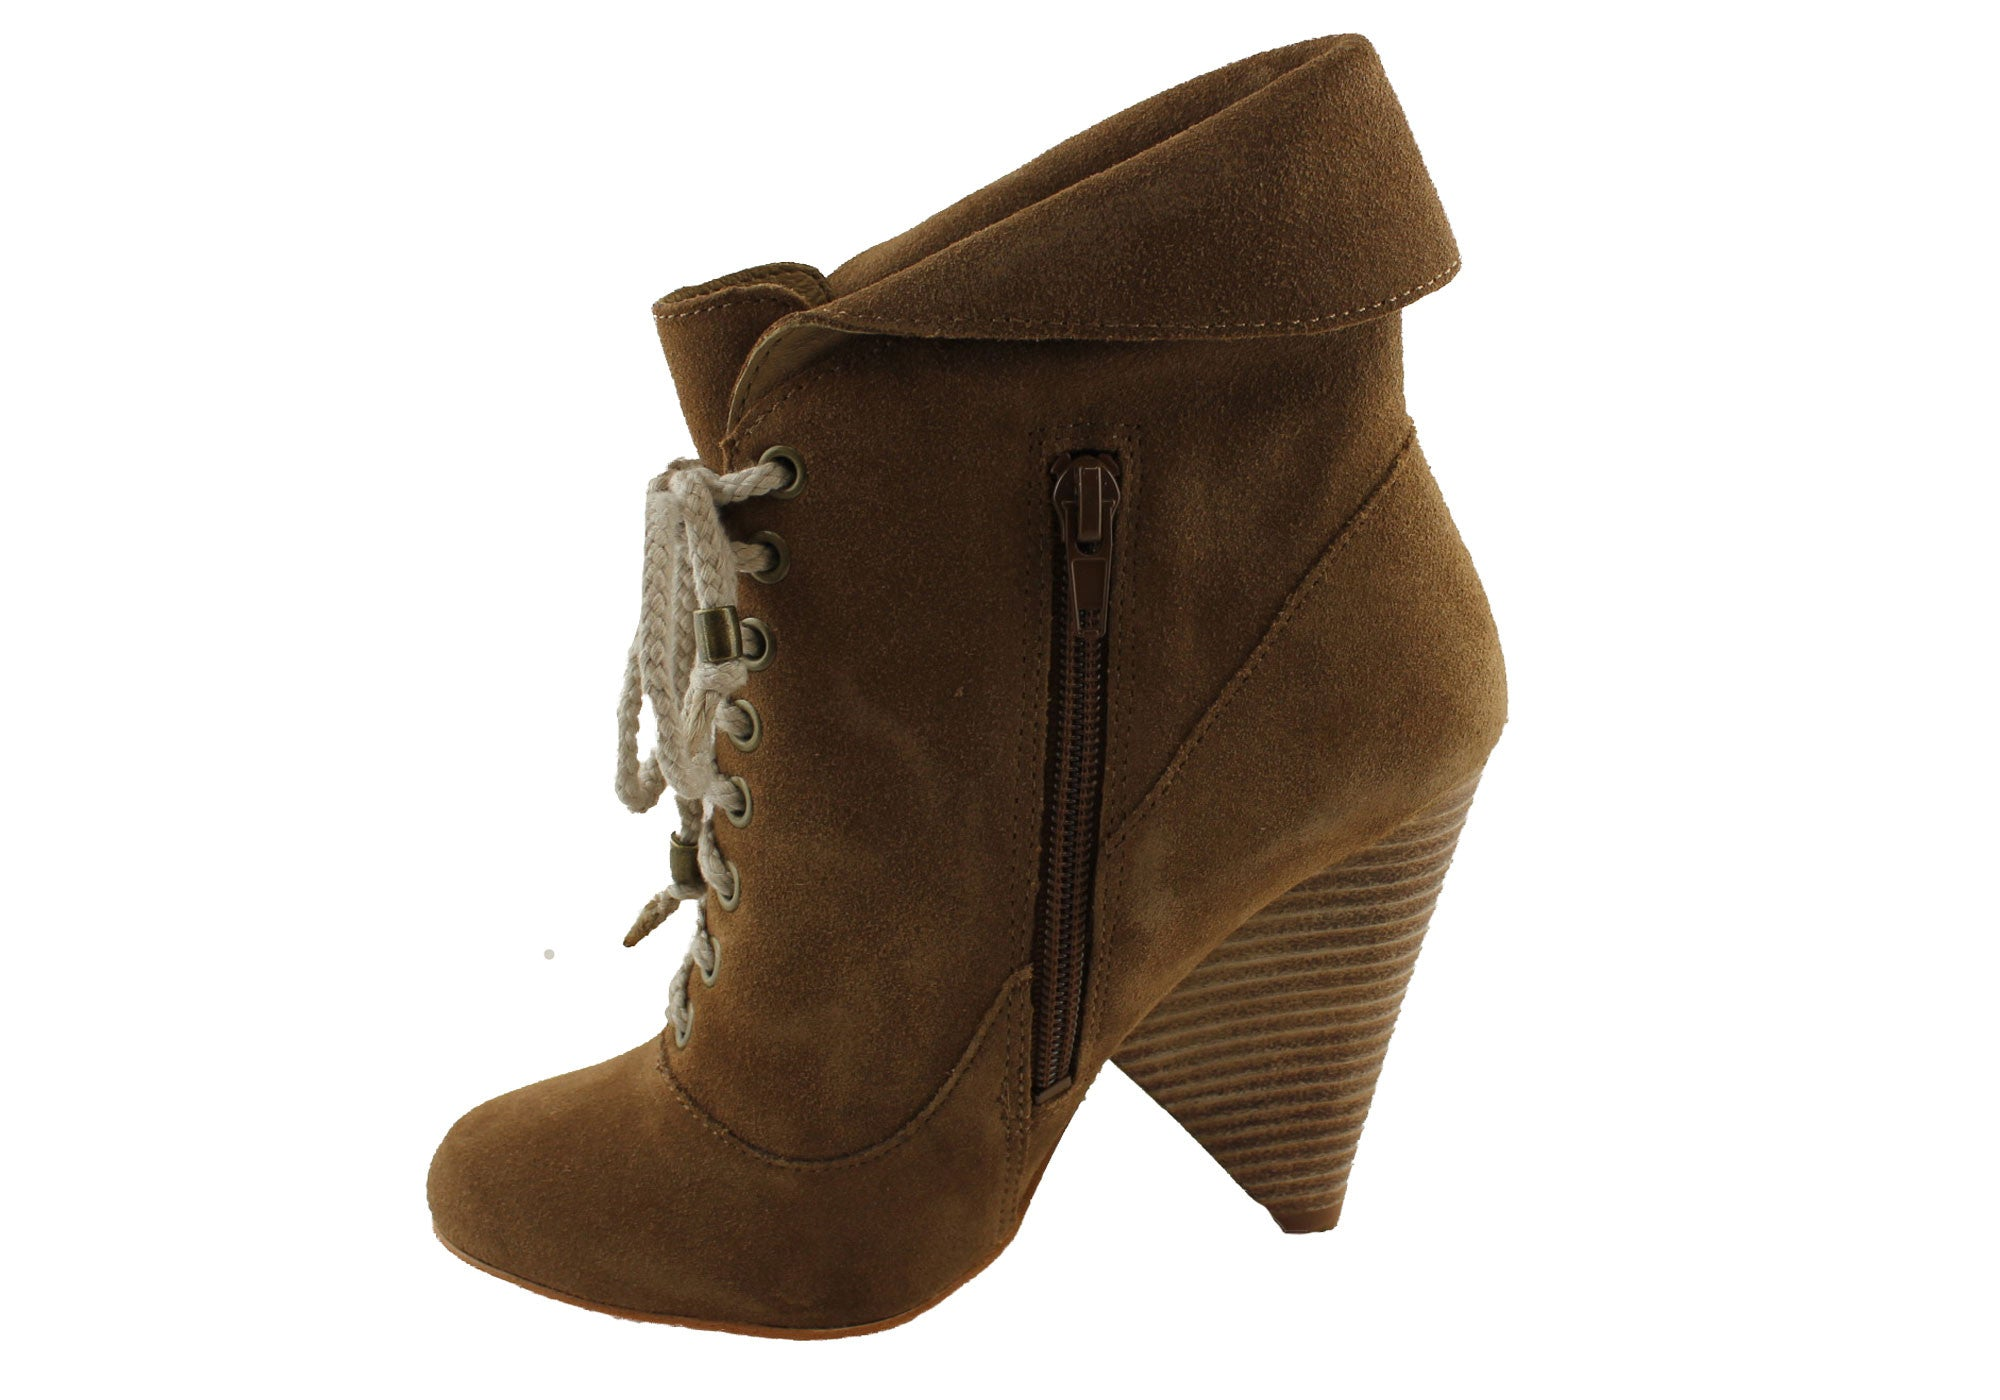 RMK Dalas Womens Fashion Ankle Suede Boots